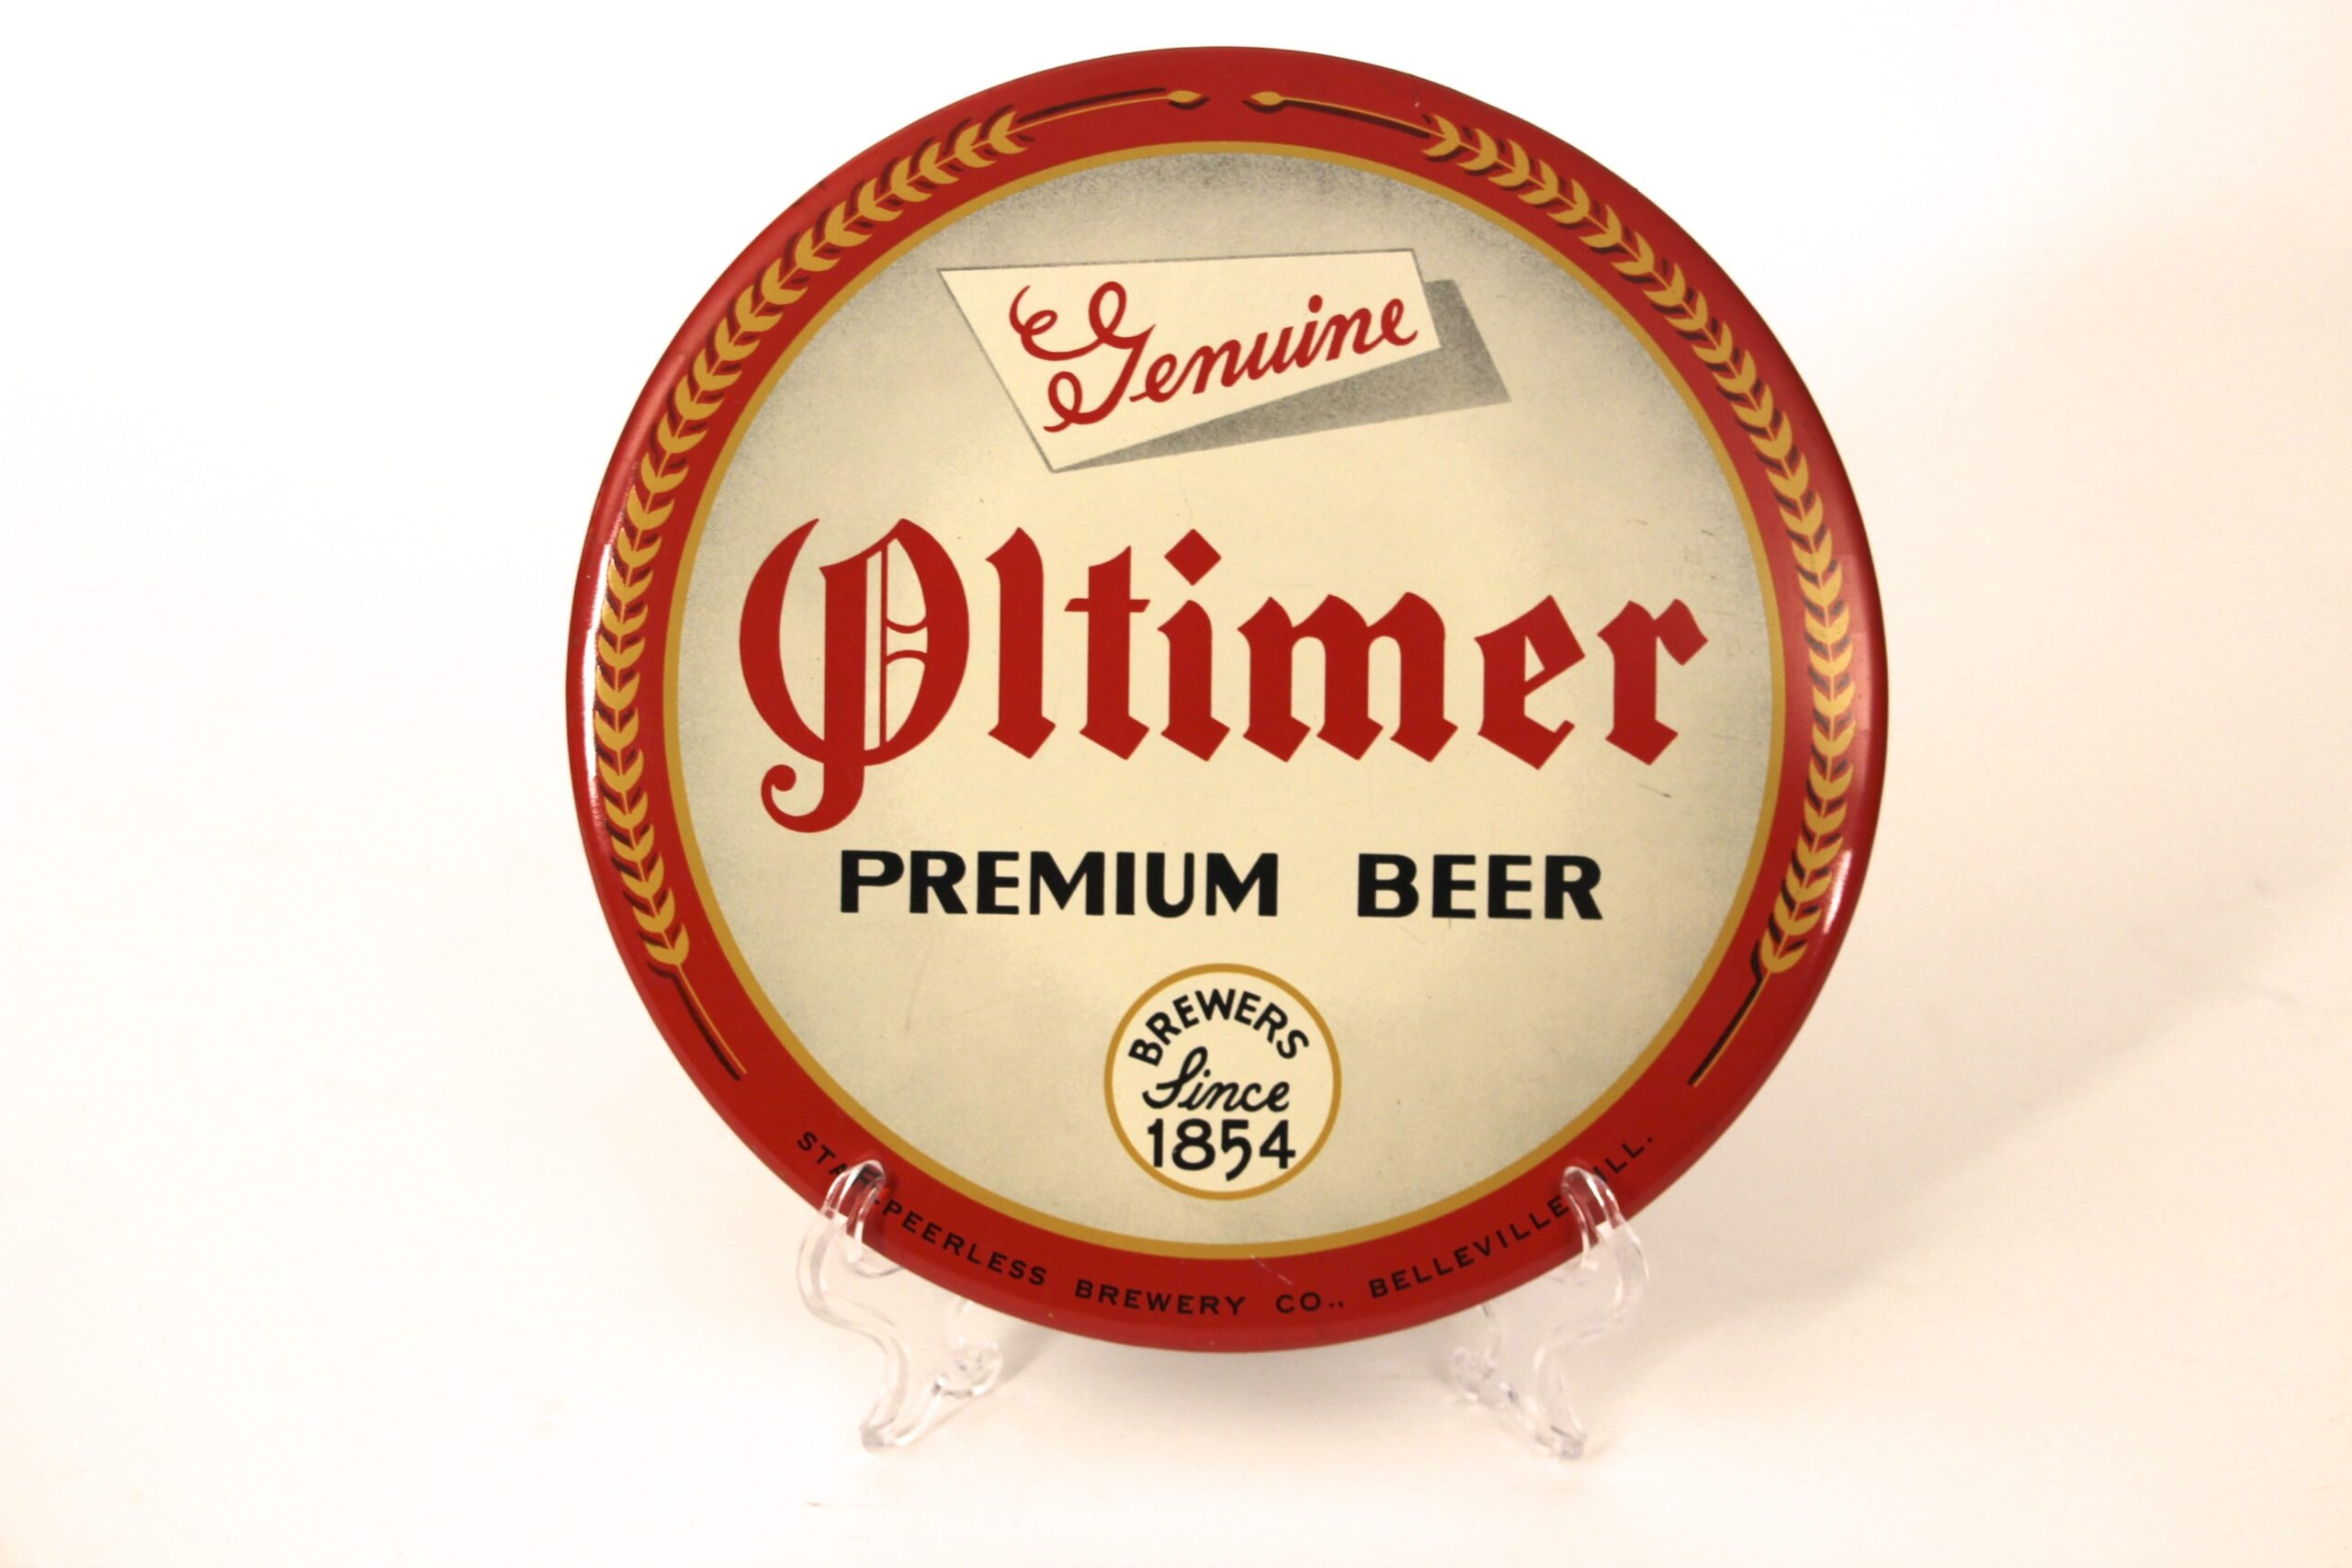 Oltimer Beer Celluloid Over Cardboard Button Sign, Belleville, IL